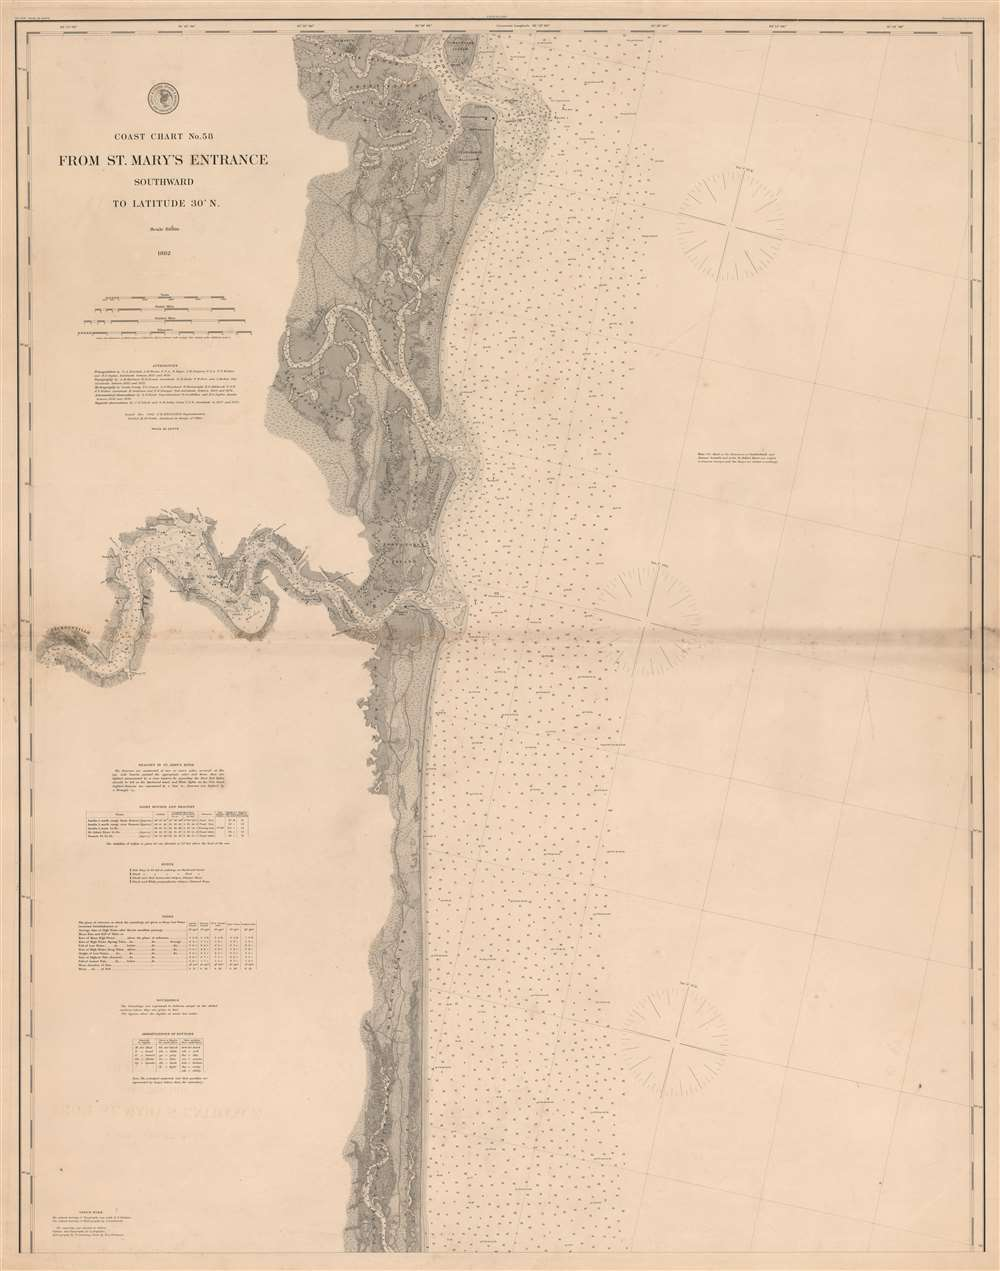 Coast Chart No. 58 From St. Mary's Entrance Southward to Latitude 30 Degrees N. - Main View